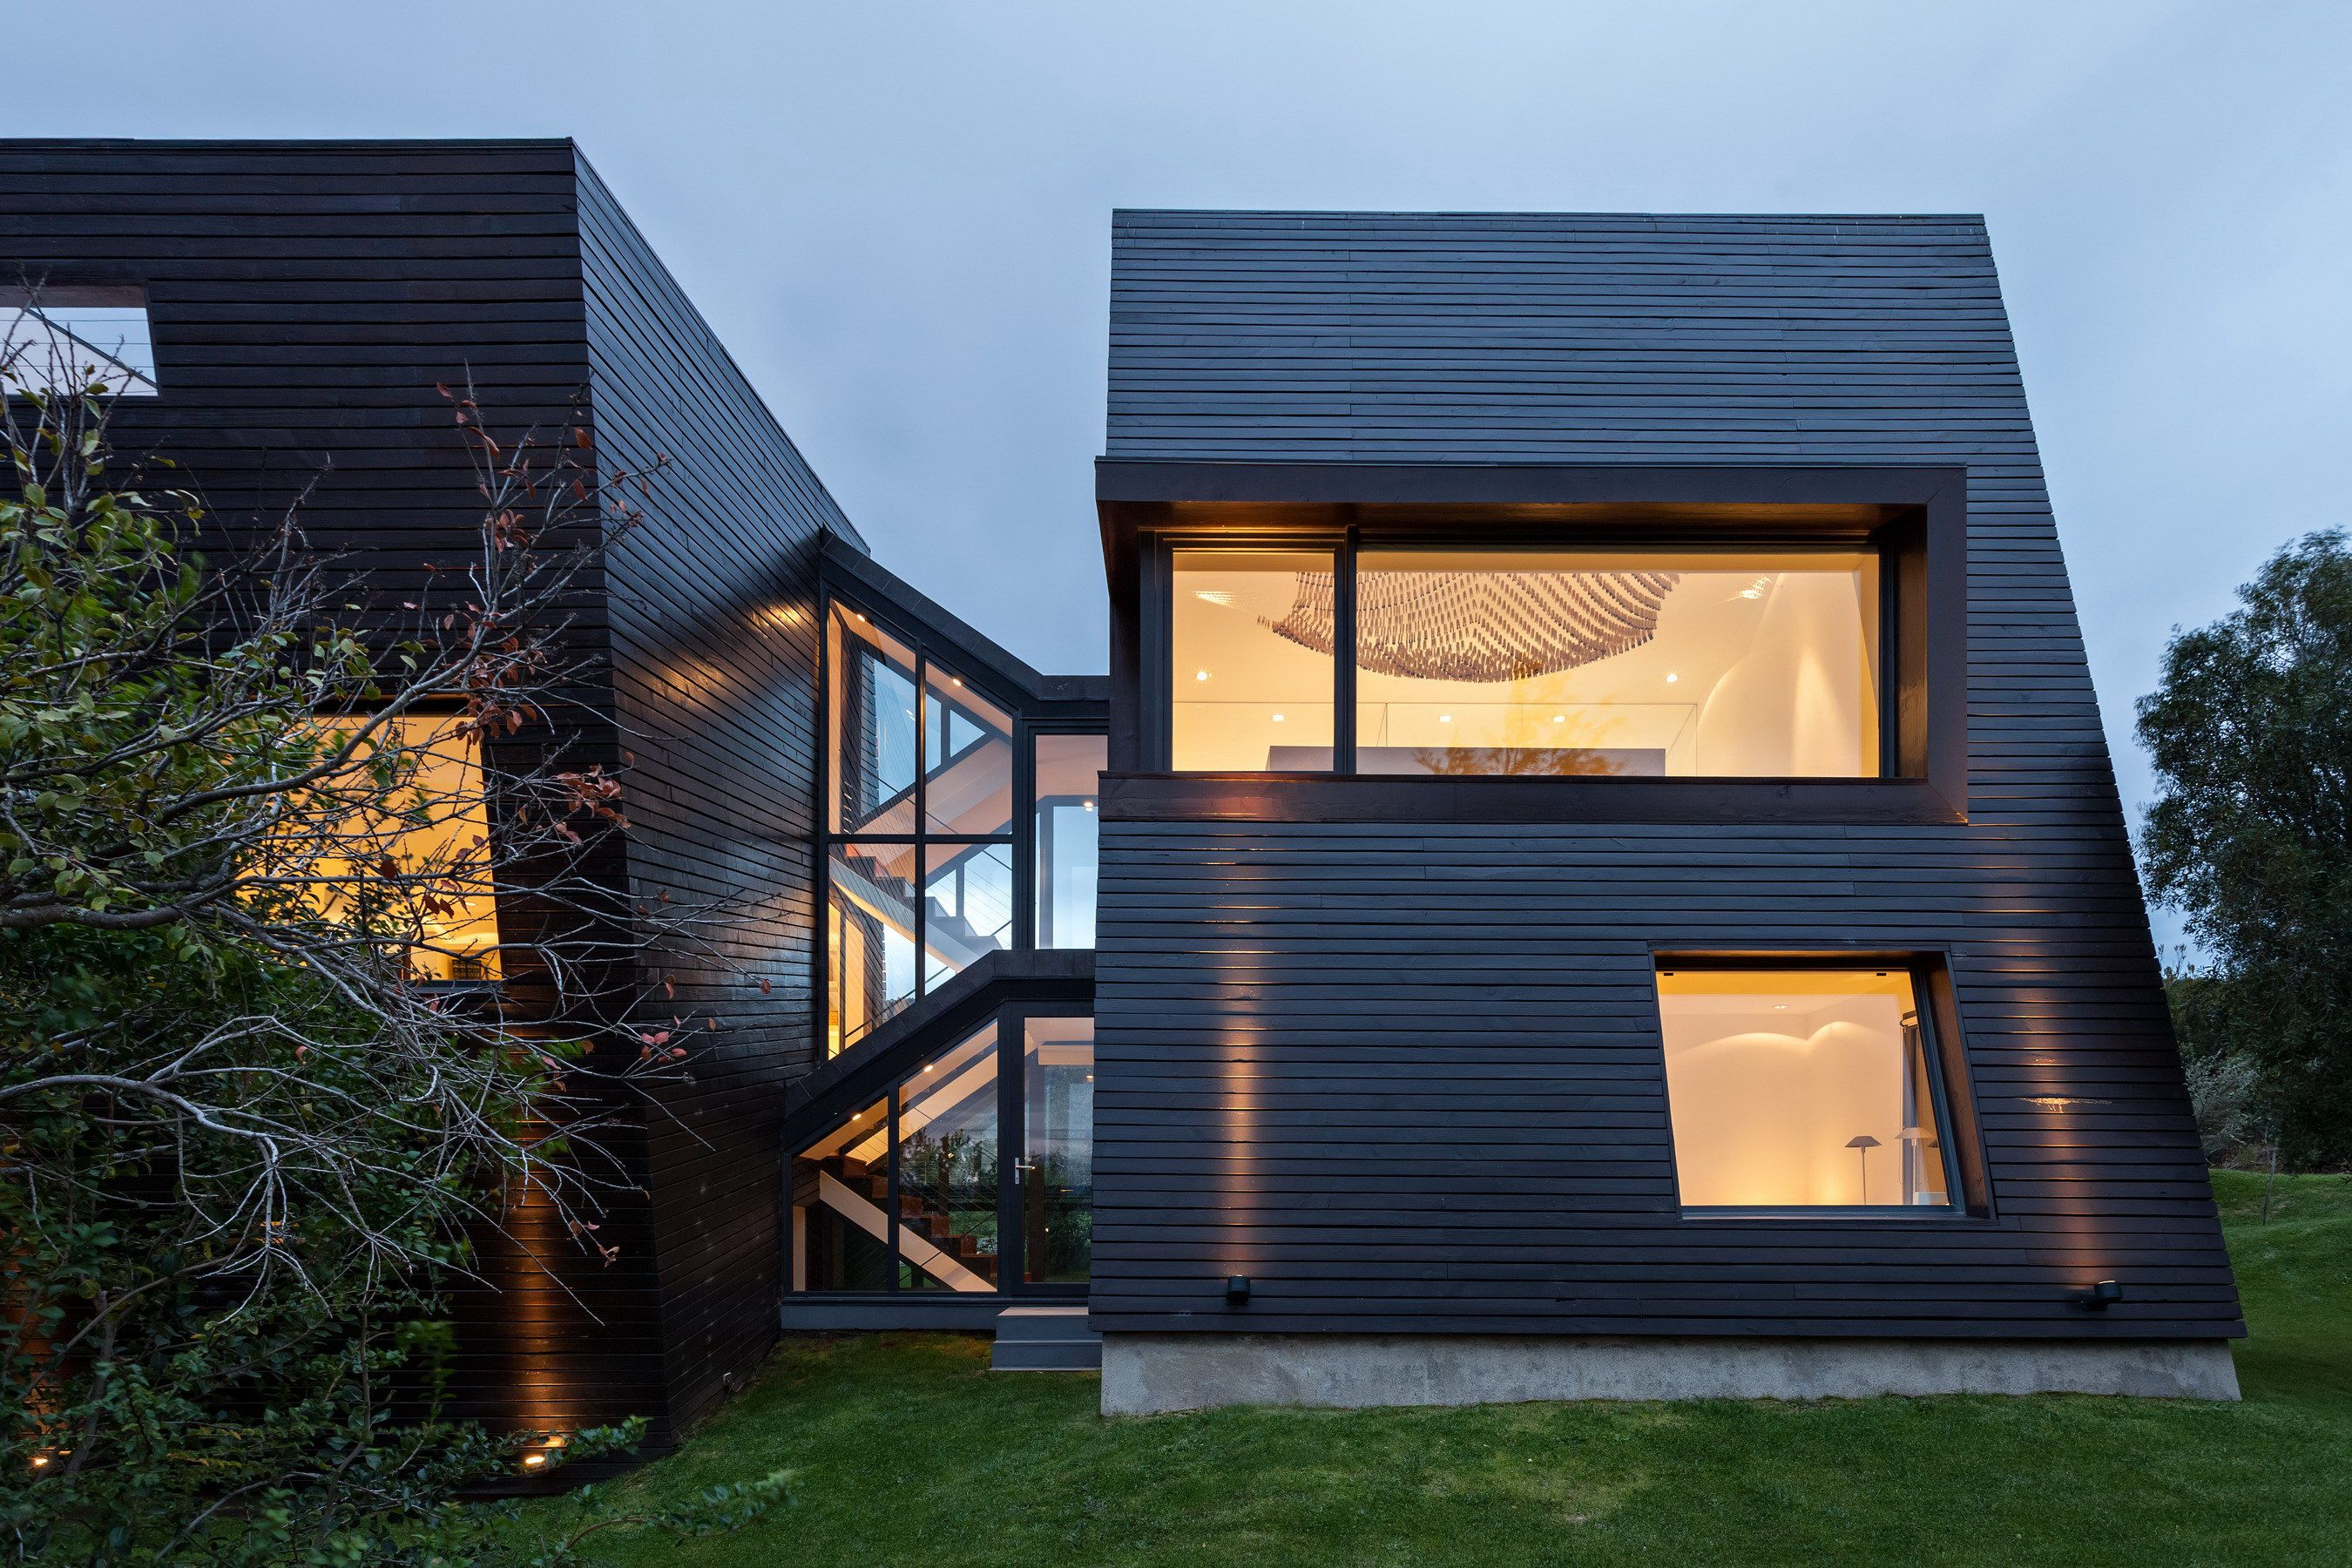 Spacious House With Five Prisms By Alric Galindez Maison Bois